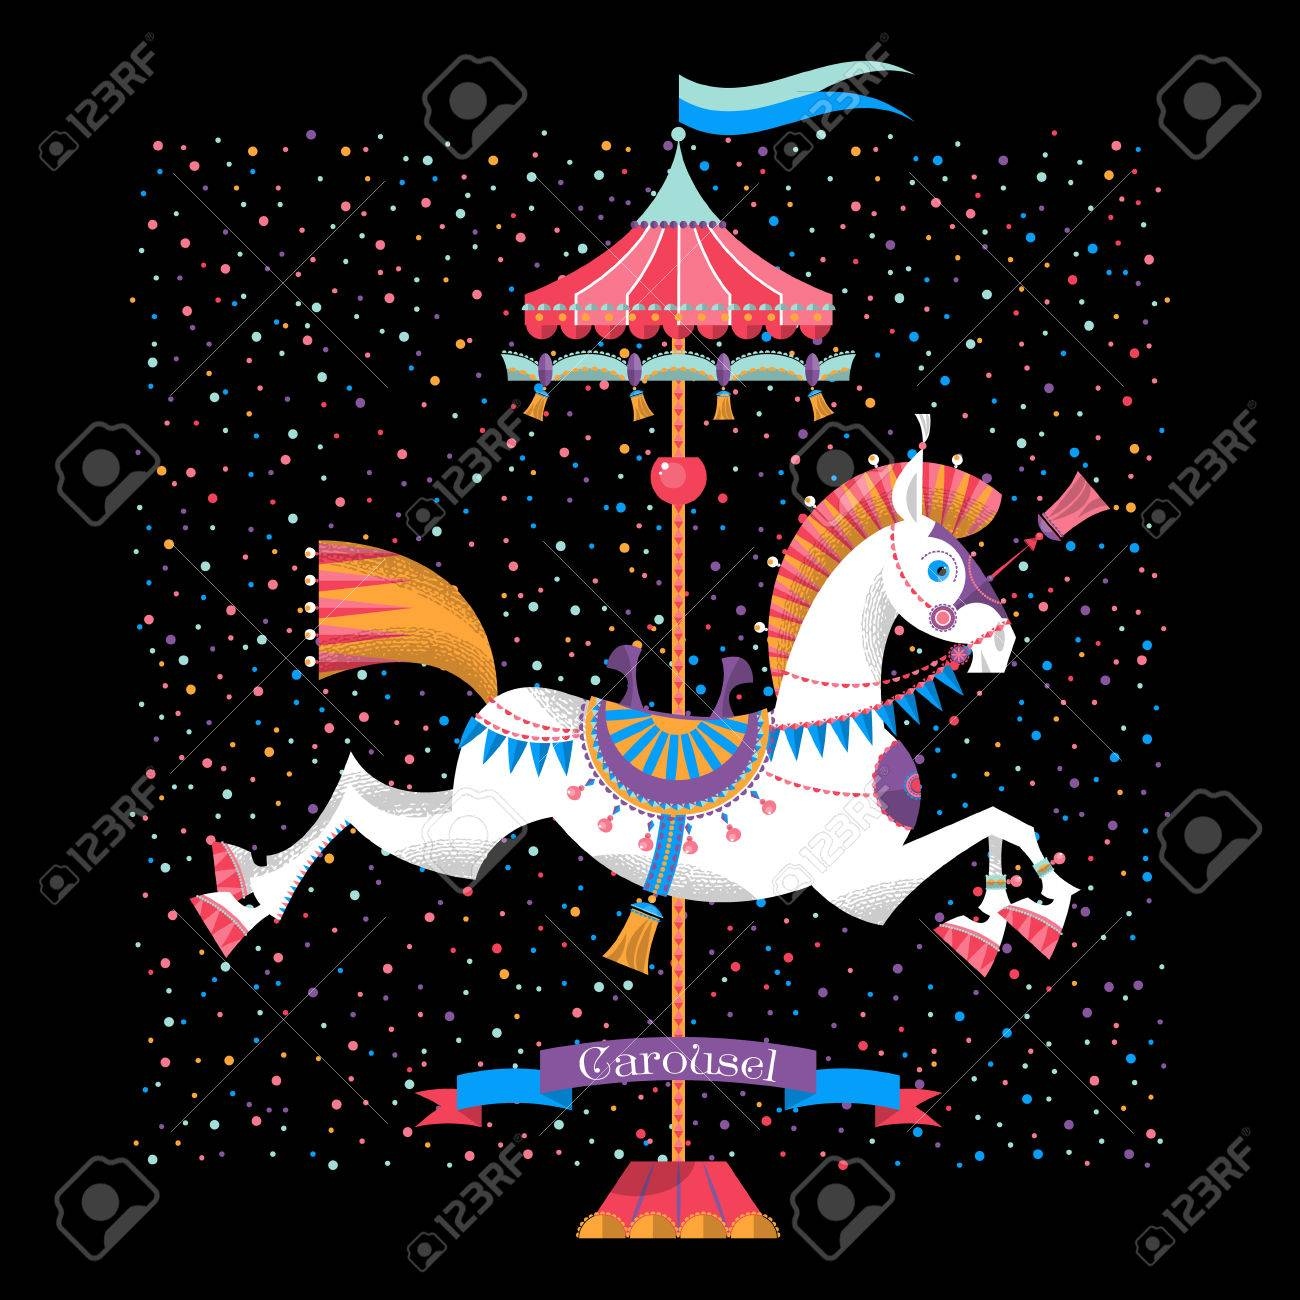 Greeting Card With Vintage Carousel Horse Vector Illustration